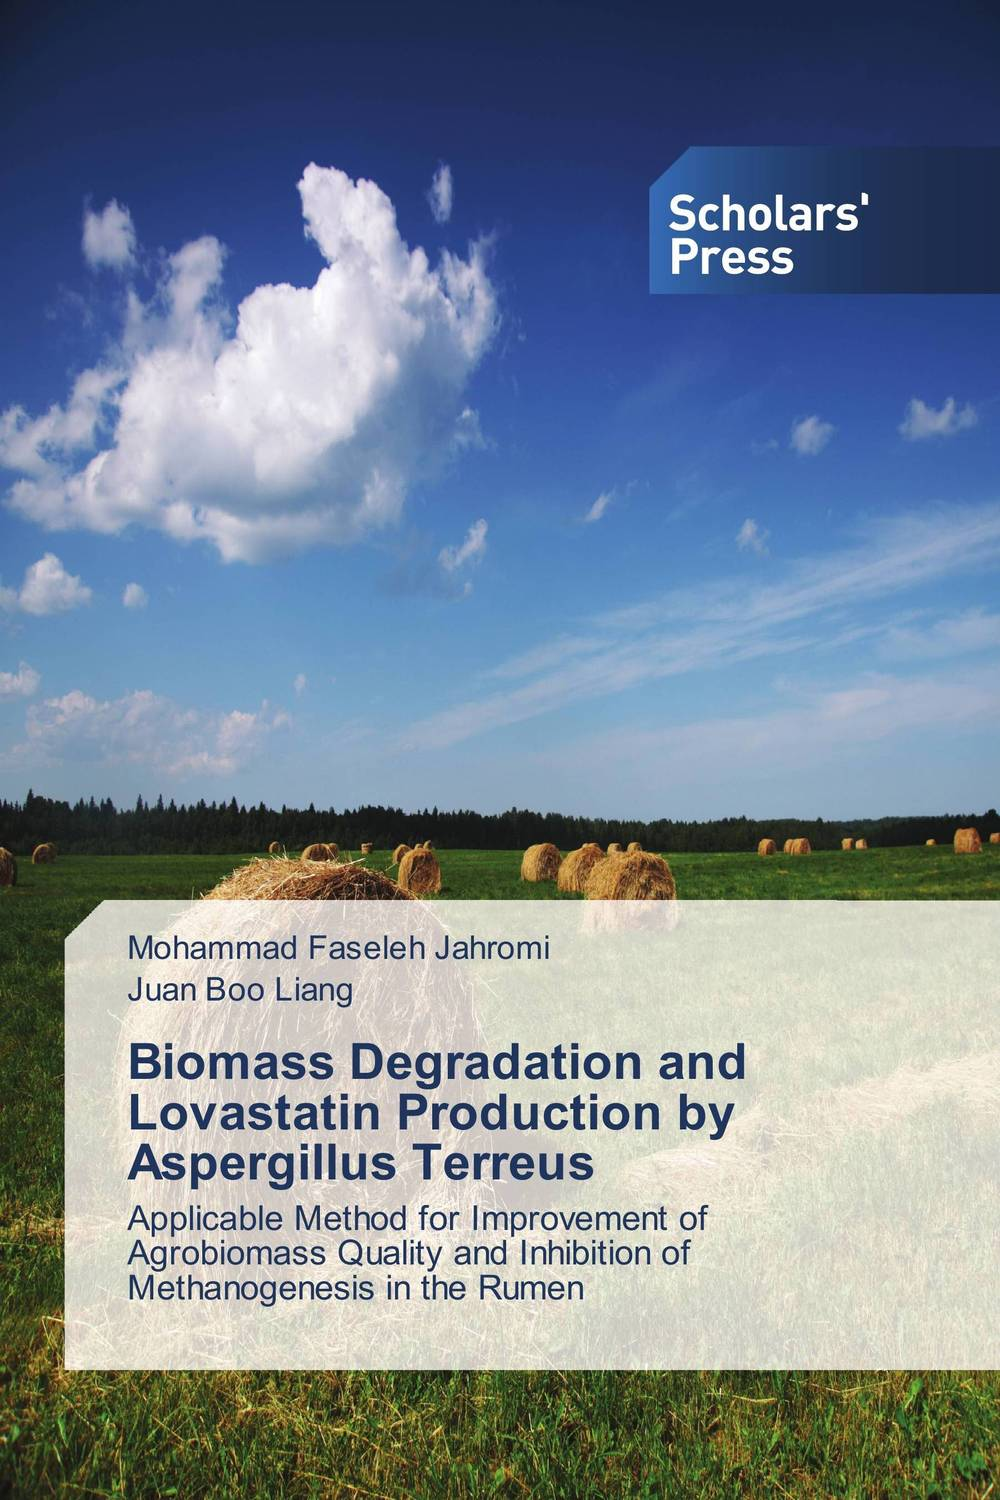 Biomass Degradation and Lovastatin Production by Aspergillus Terreus cold storage accessibility and agricultural production by smallholders